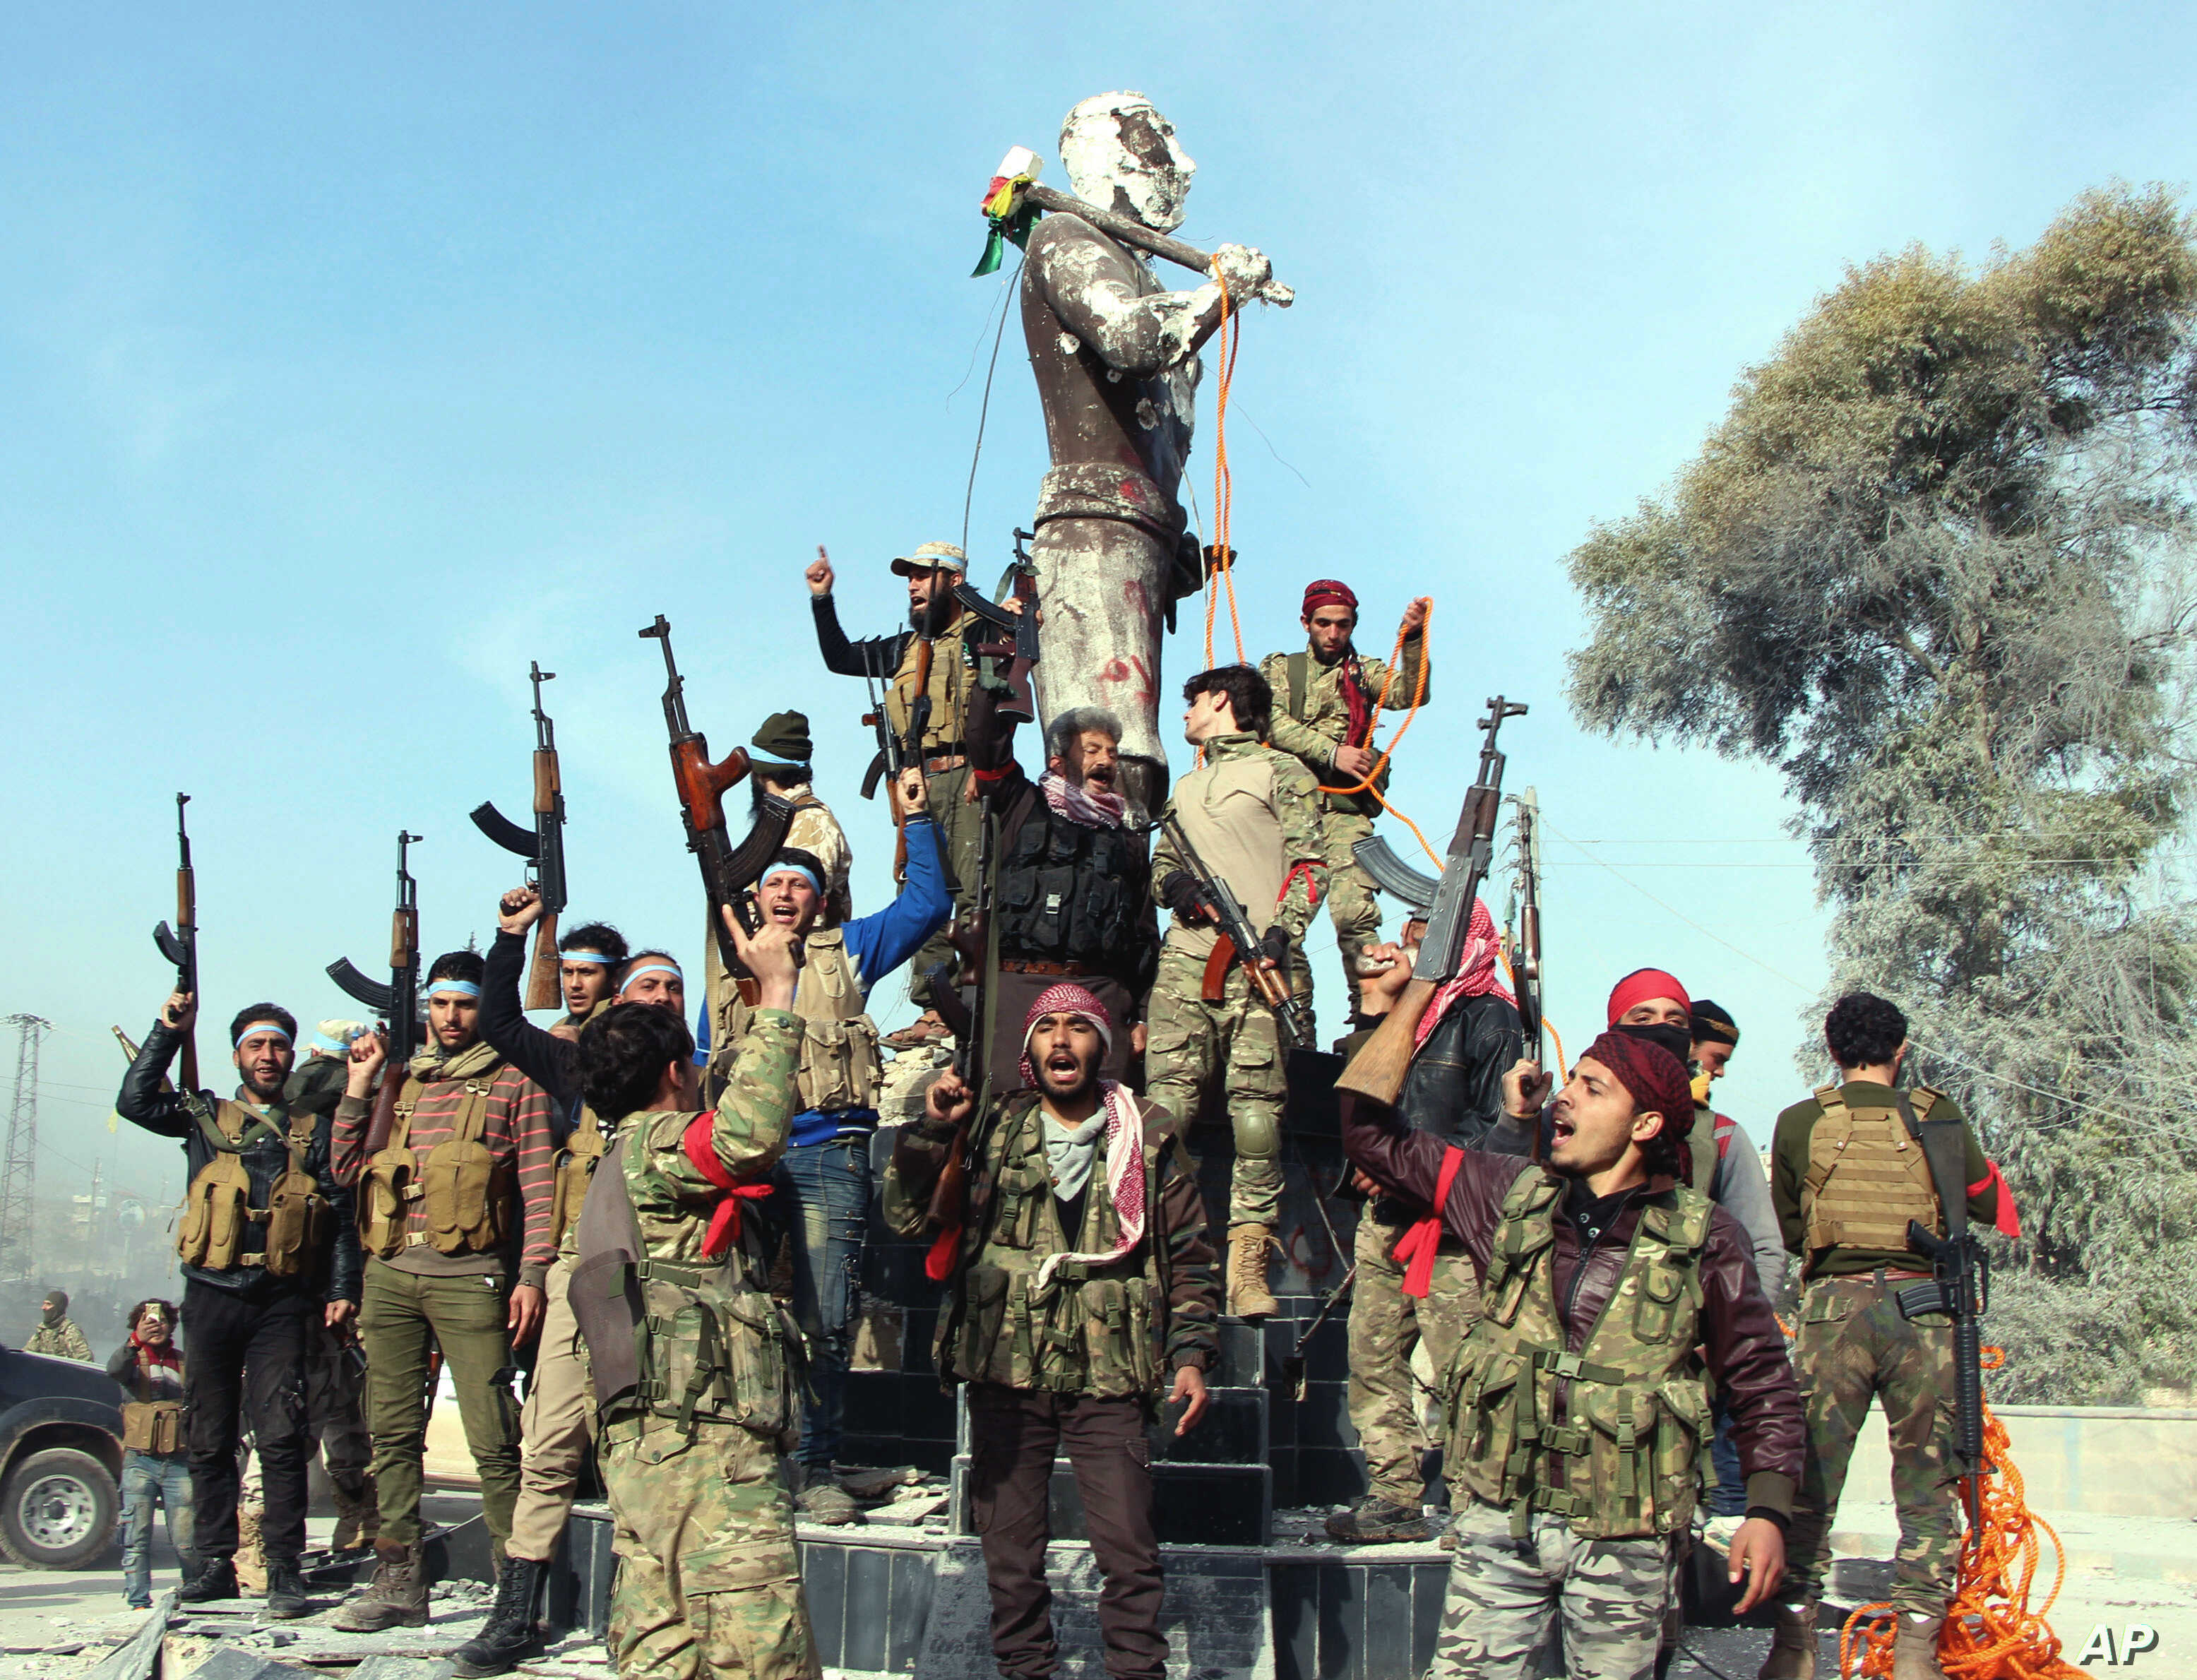 Turkey-backed Free Syrian Army soldiers celebrate around a statue of Kawa, a mythology figure in Kurdish culture as they prepare to destroy it in city center of Afrin, northwestern Syria,  March 18, 2018.